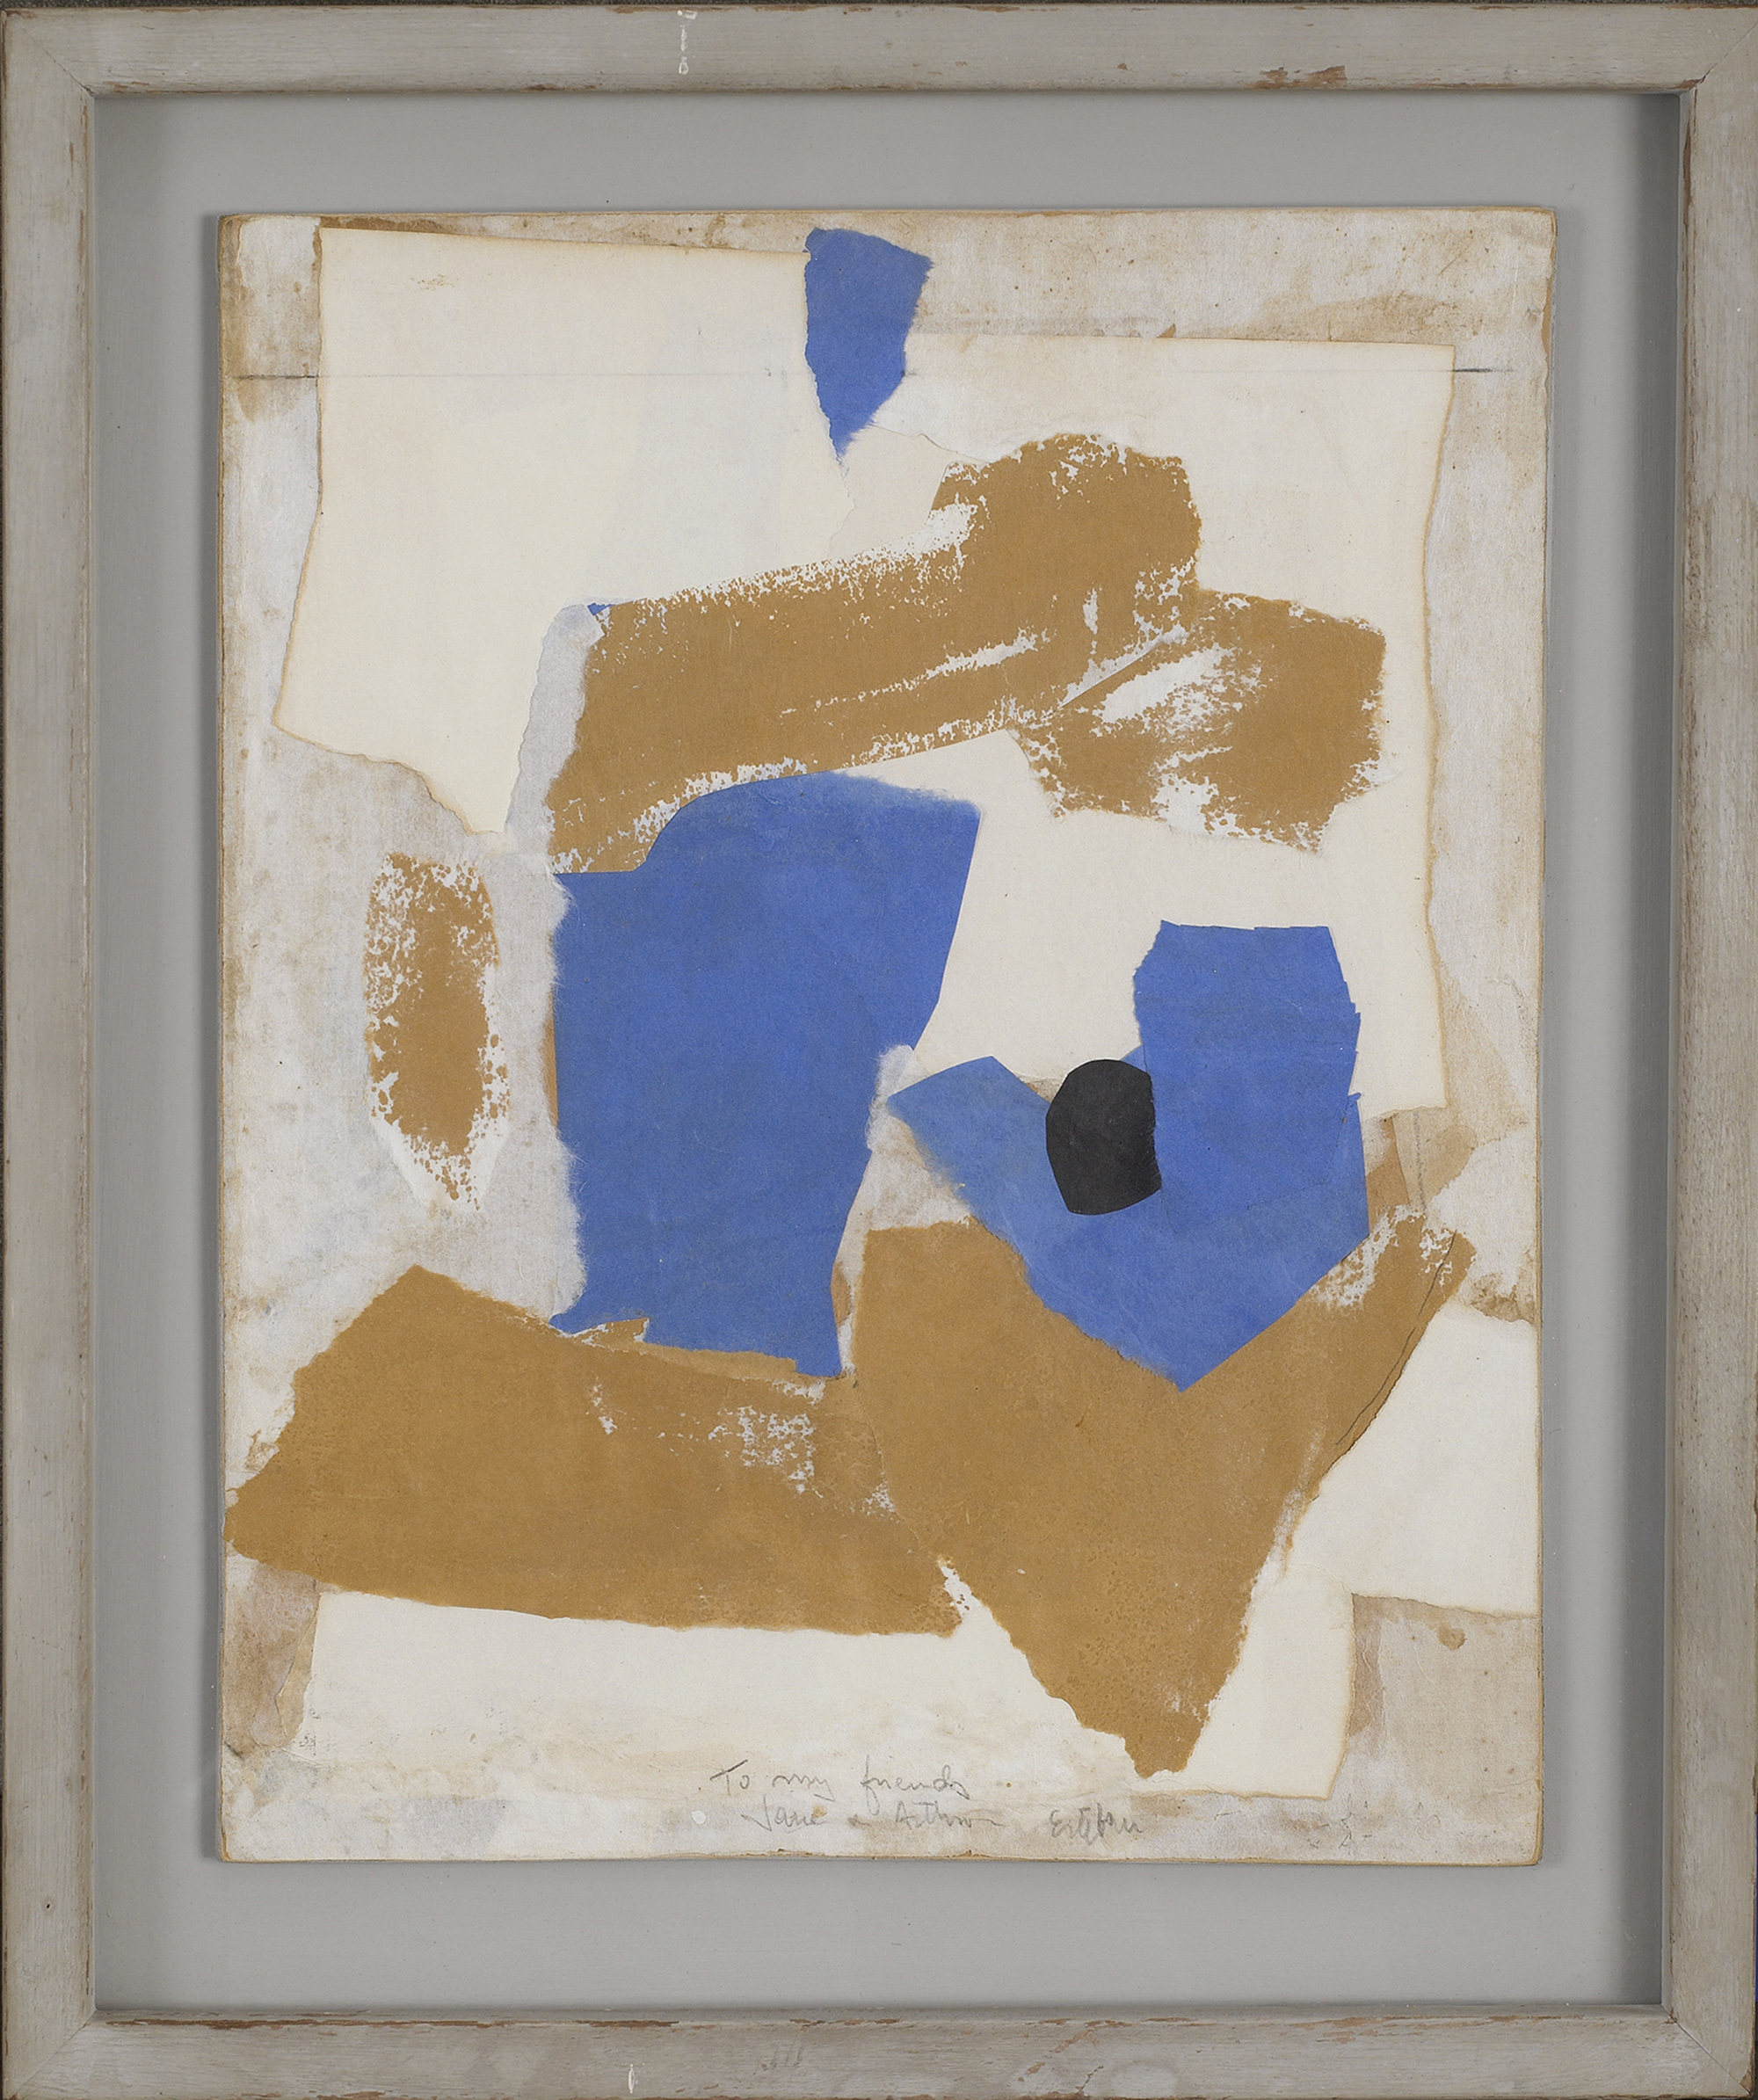 SOLD  Untitled,   c. 1961, collage on board painted by the artist, 13 1/2 x 10 1/2 inches